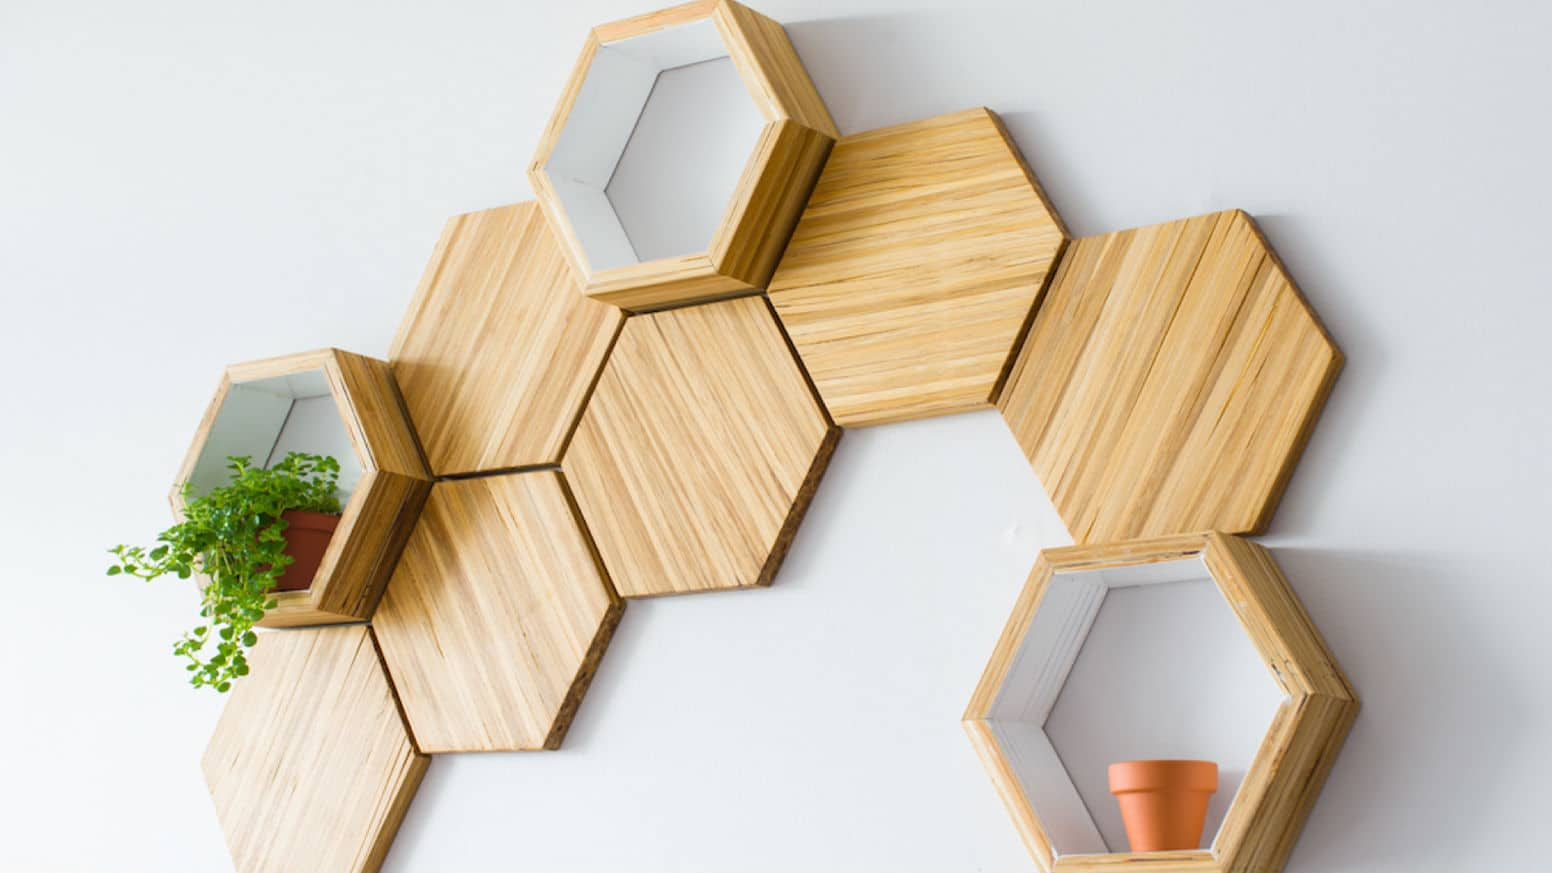 ChopValue Transforms Chopsticks Into Beautiful Home Decor